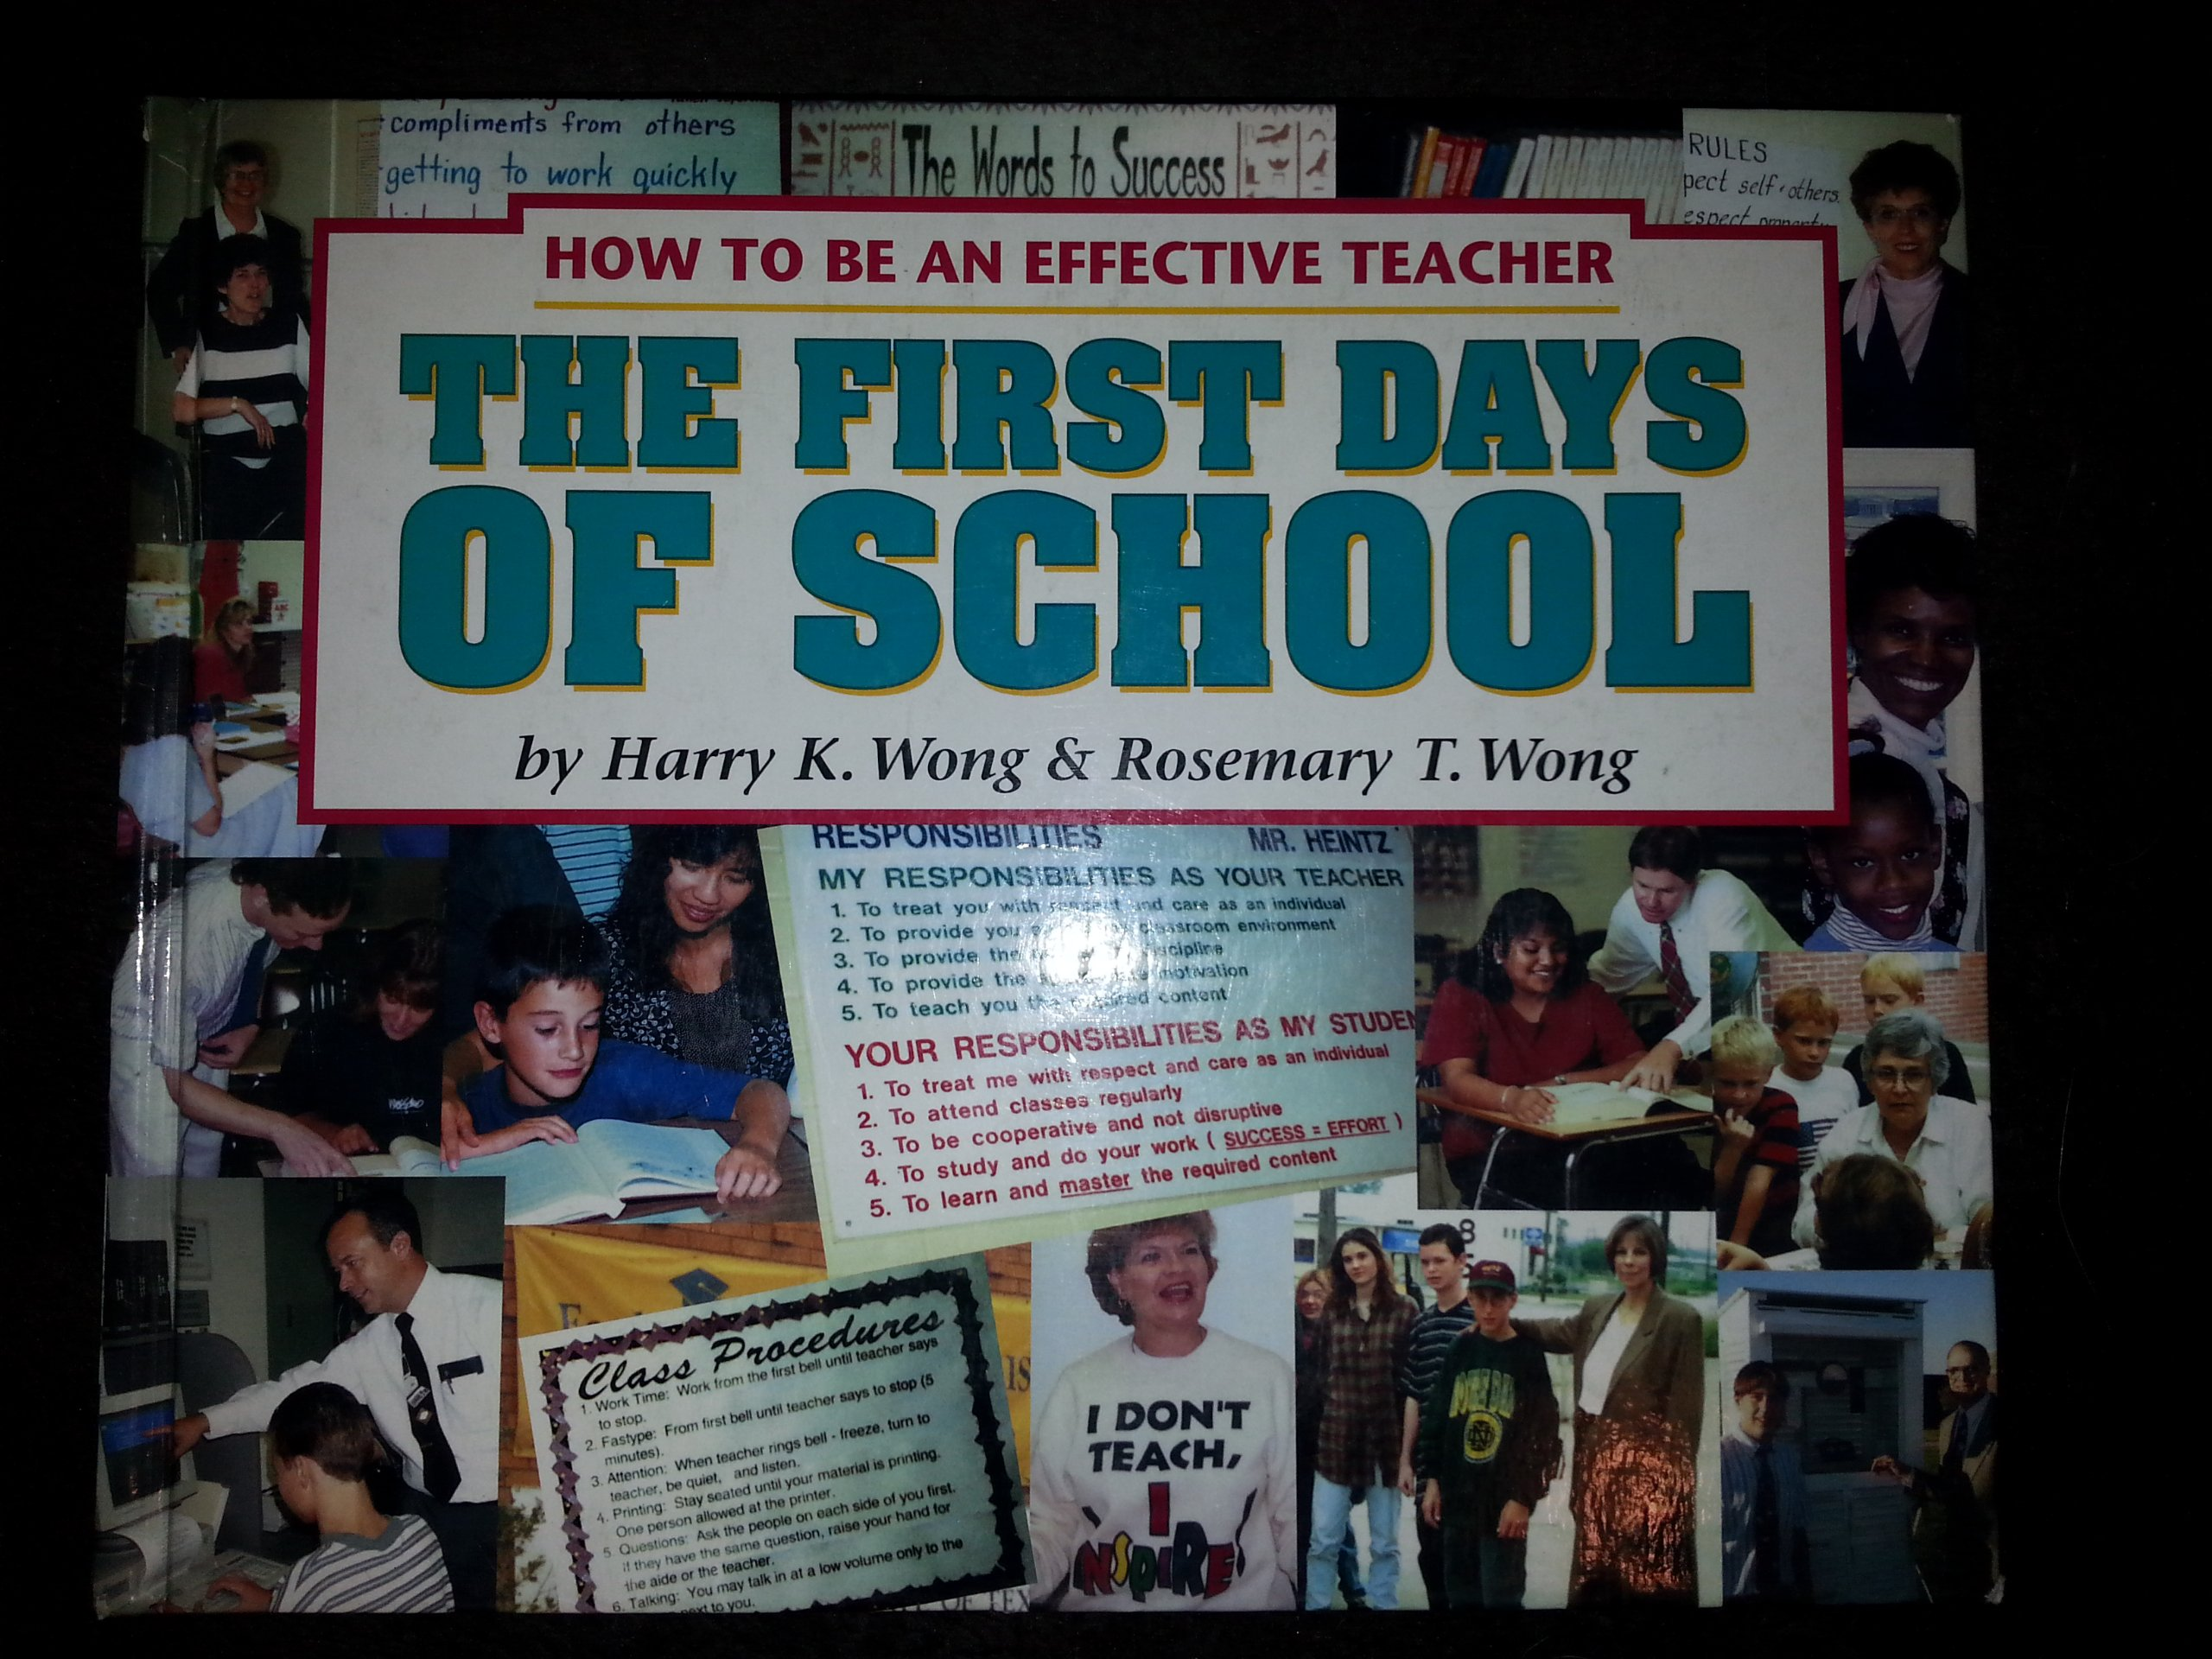 First days of school how to be an effective teacher harry k wong first days of school how to be an effective teacher harry k wong 9780962936036 amazon books fandeluxe Gallery